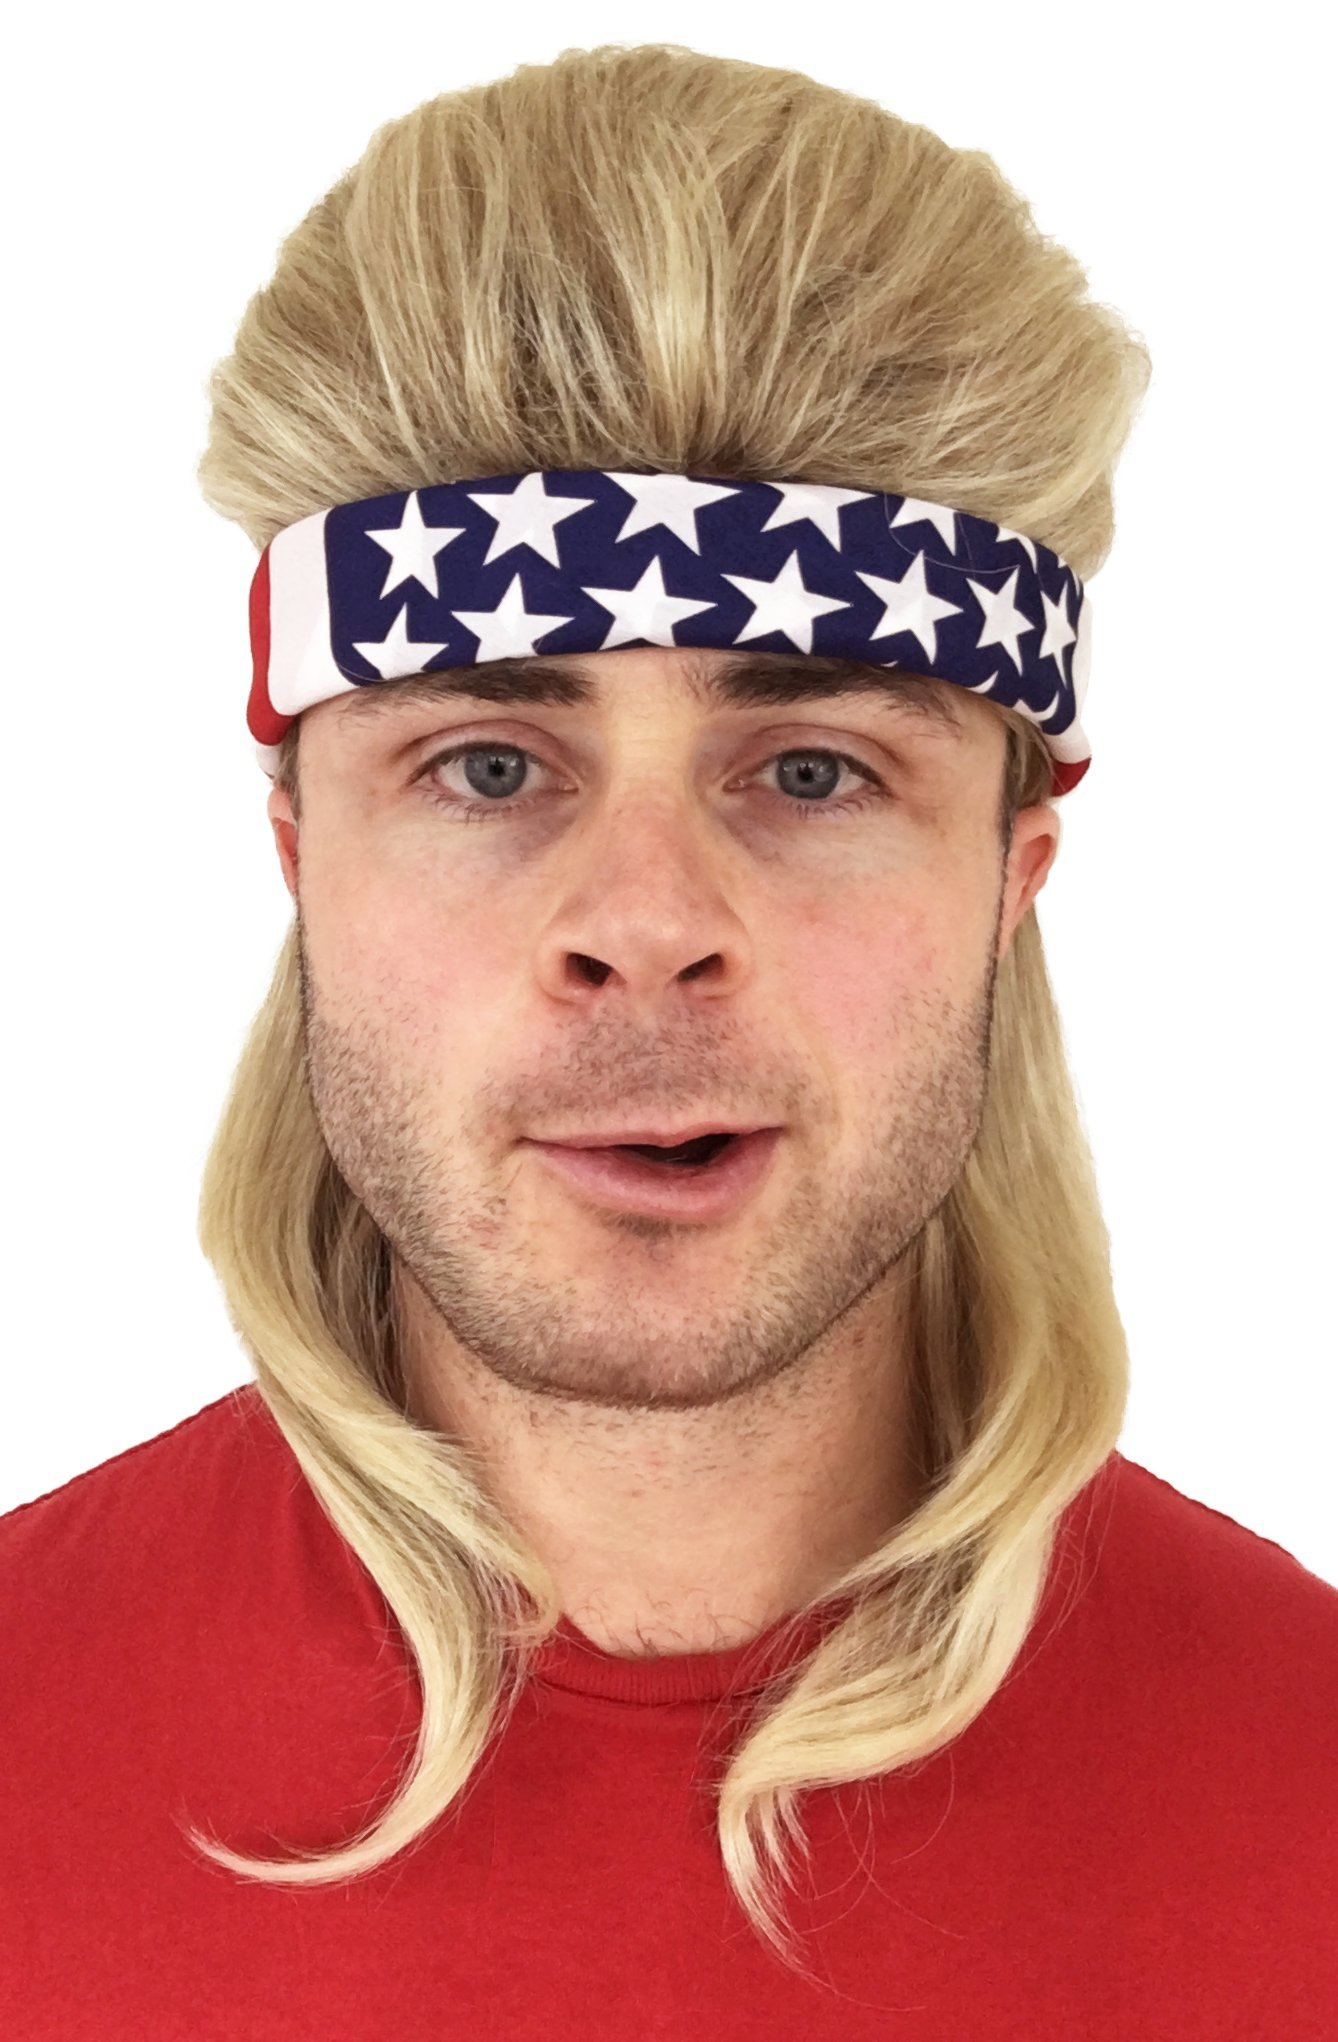 Premium Dirty Blonde Mullet Wig (Flowtop) + USA Bandana  Redneck Halloween  Costume 80s Wig Mullets for Kids Adults Hillbilly Costumes Blond Women s  Men s ... ce897d9827